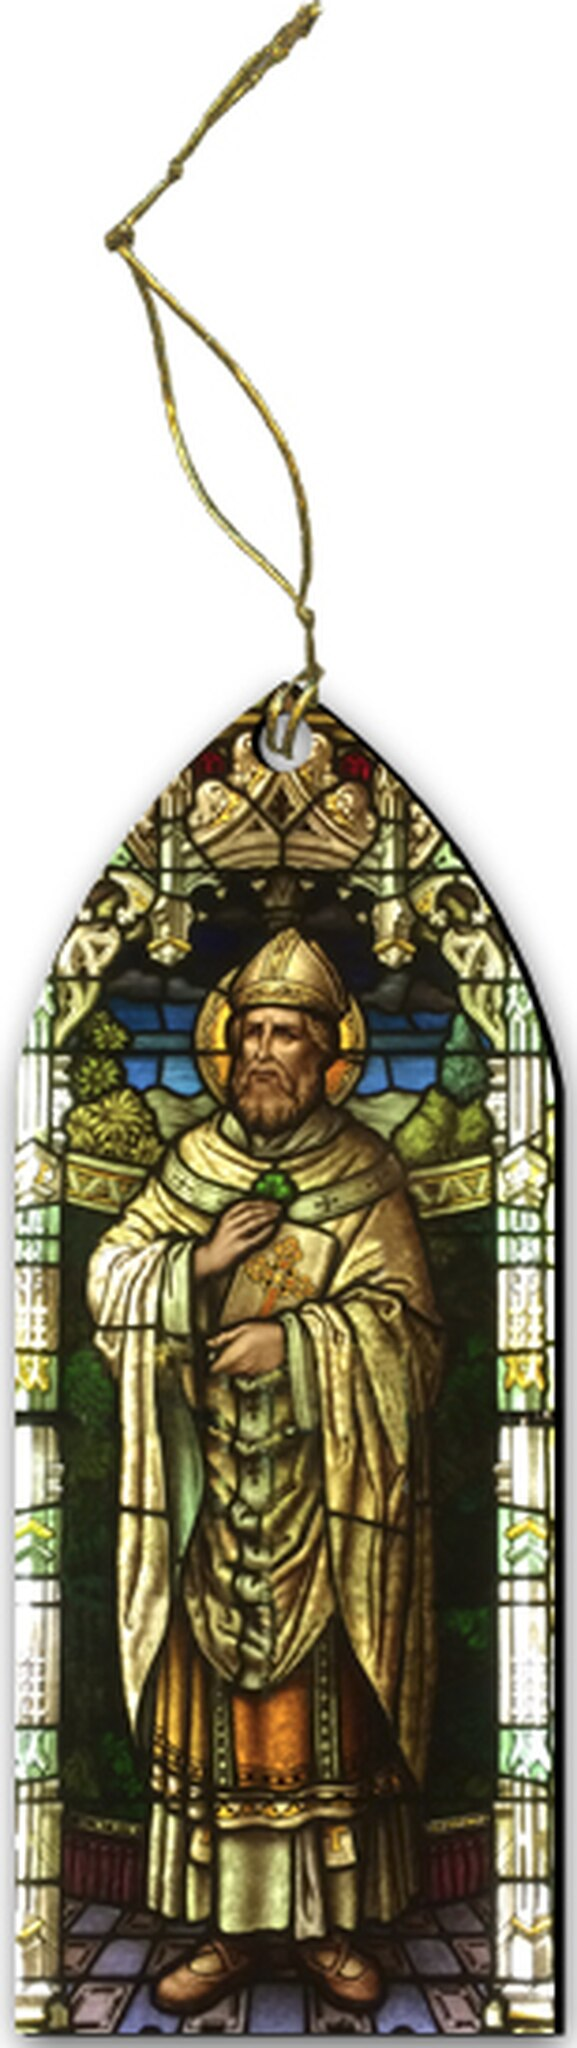 ST. PATRICK STAINED GLASS ORNAMENT